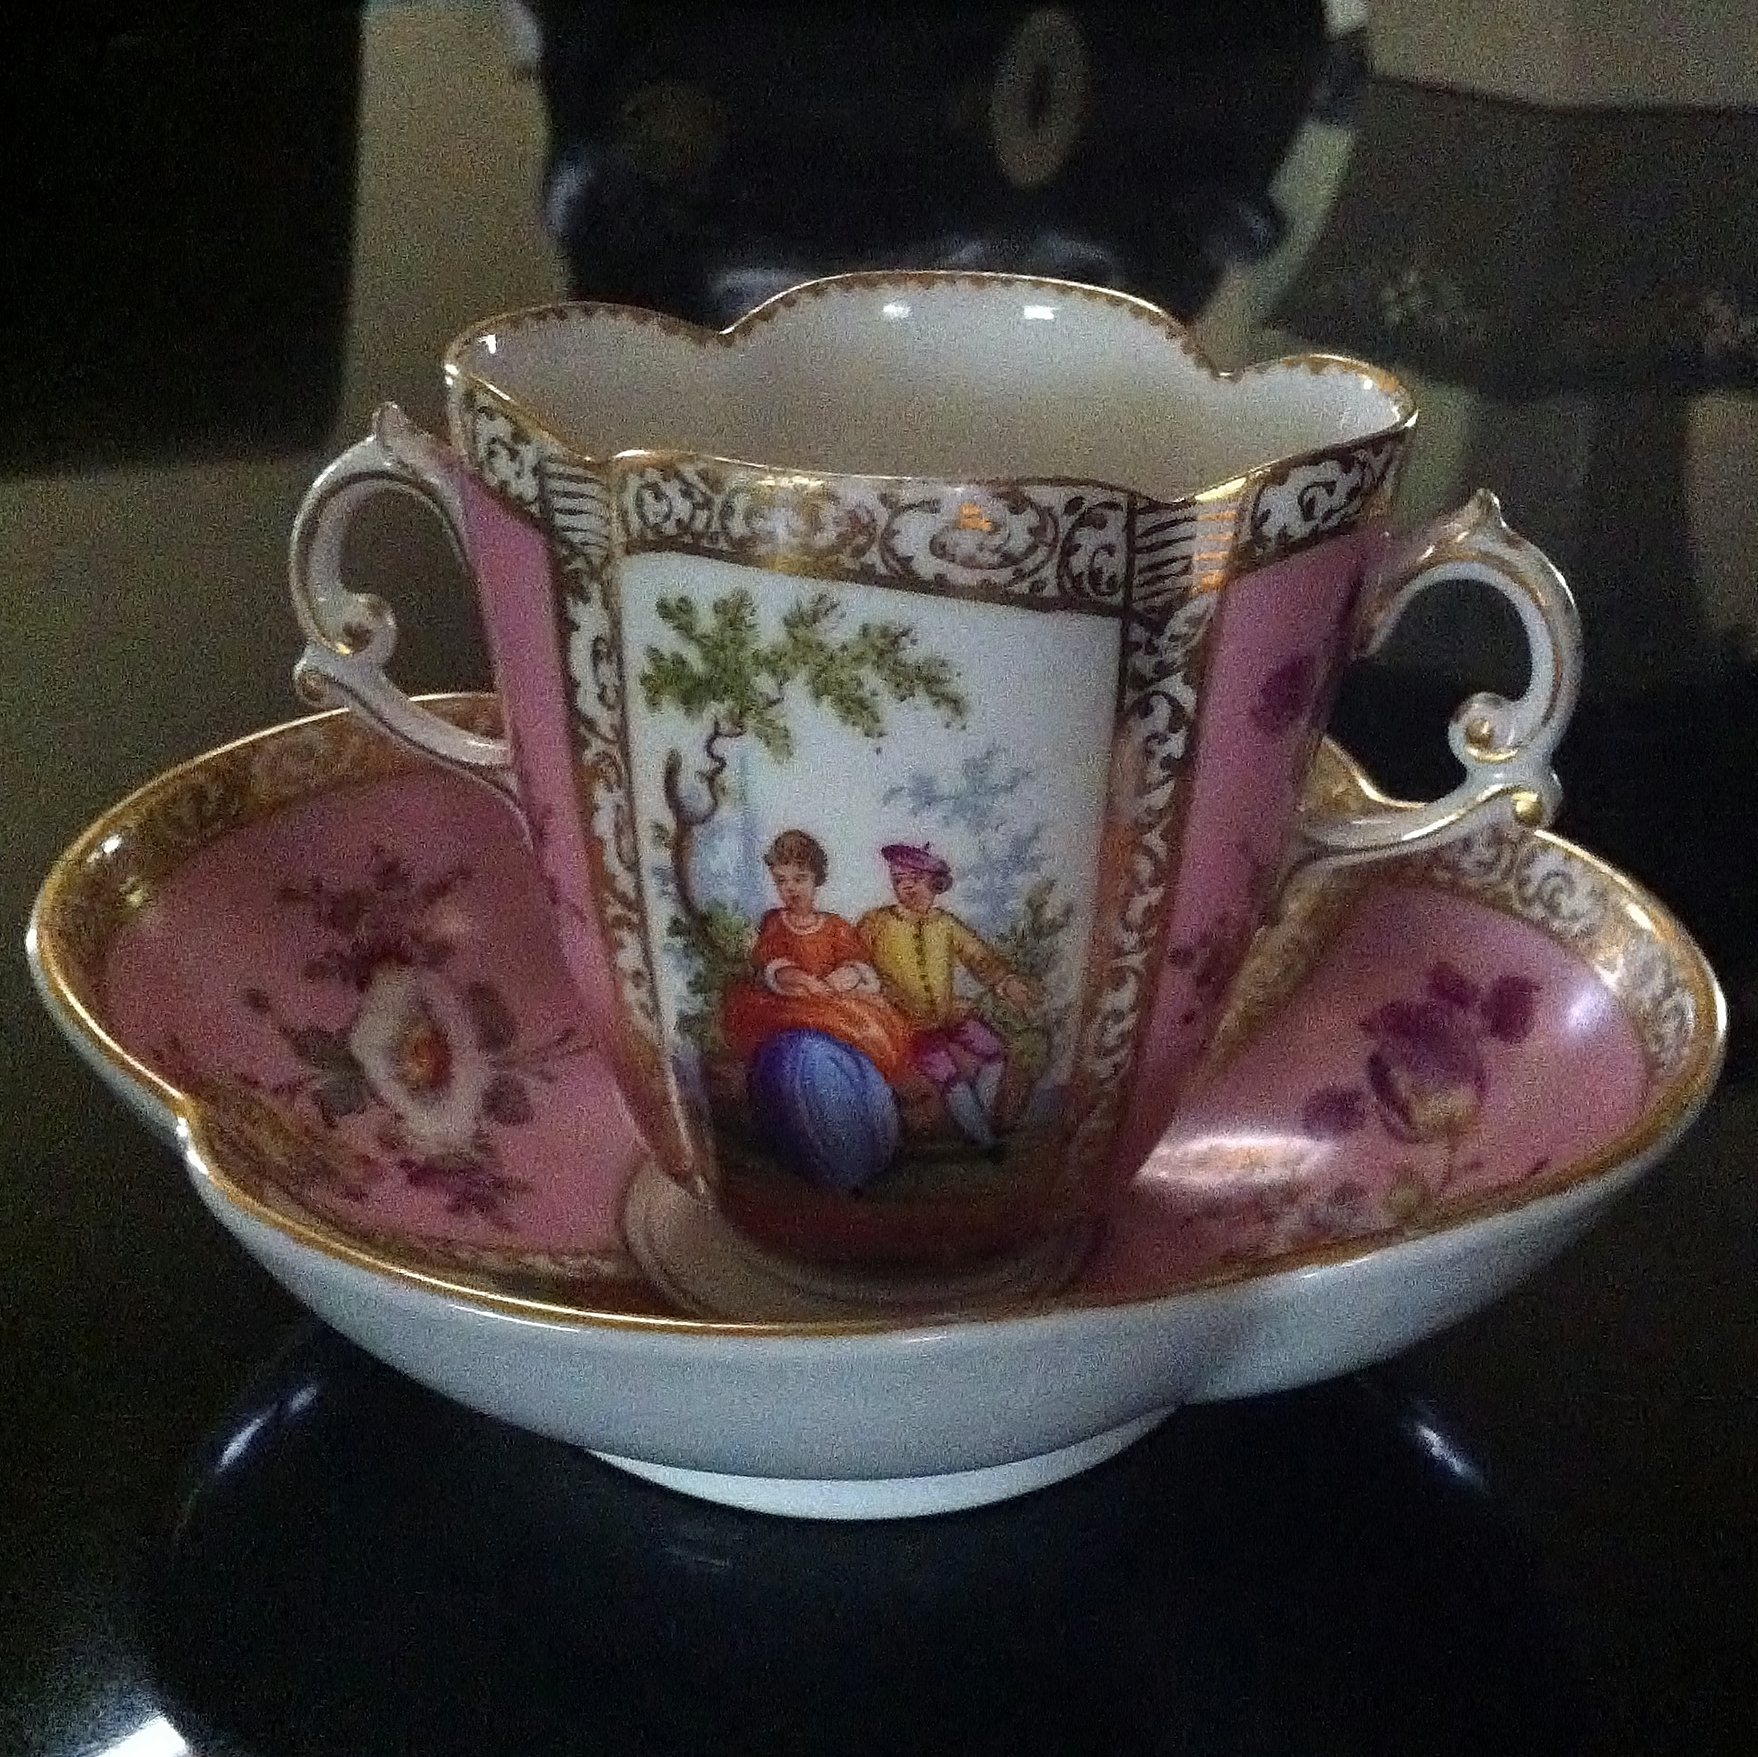 I Have A Dresden China Hot Chocolate Cup With Saucer And I